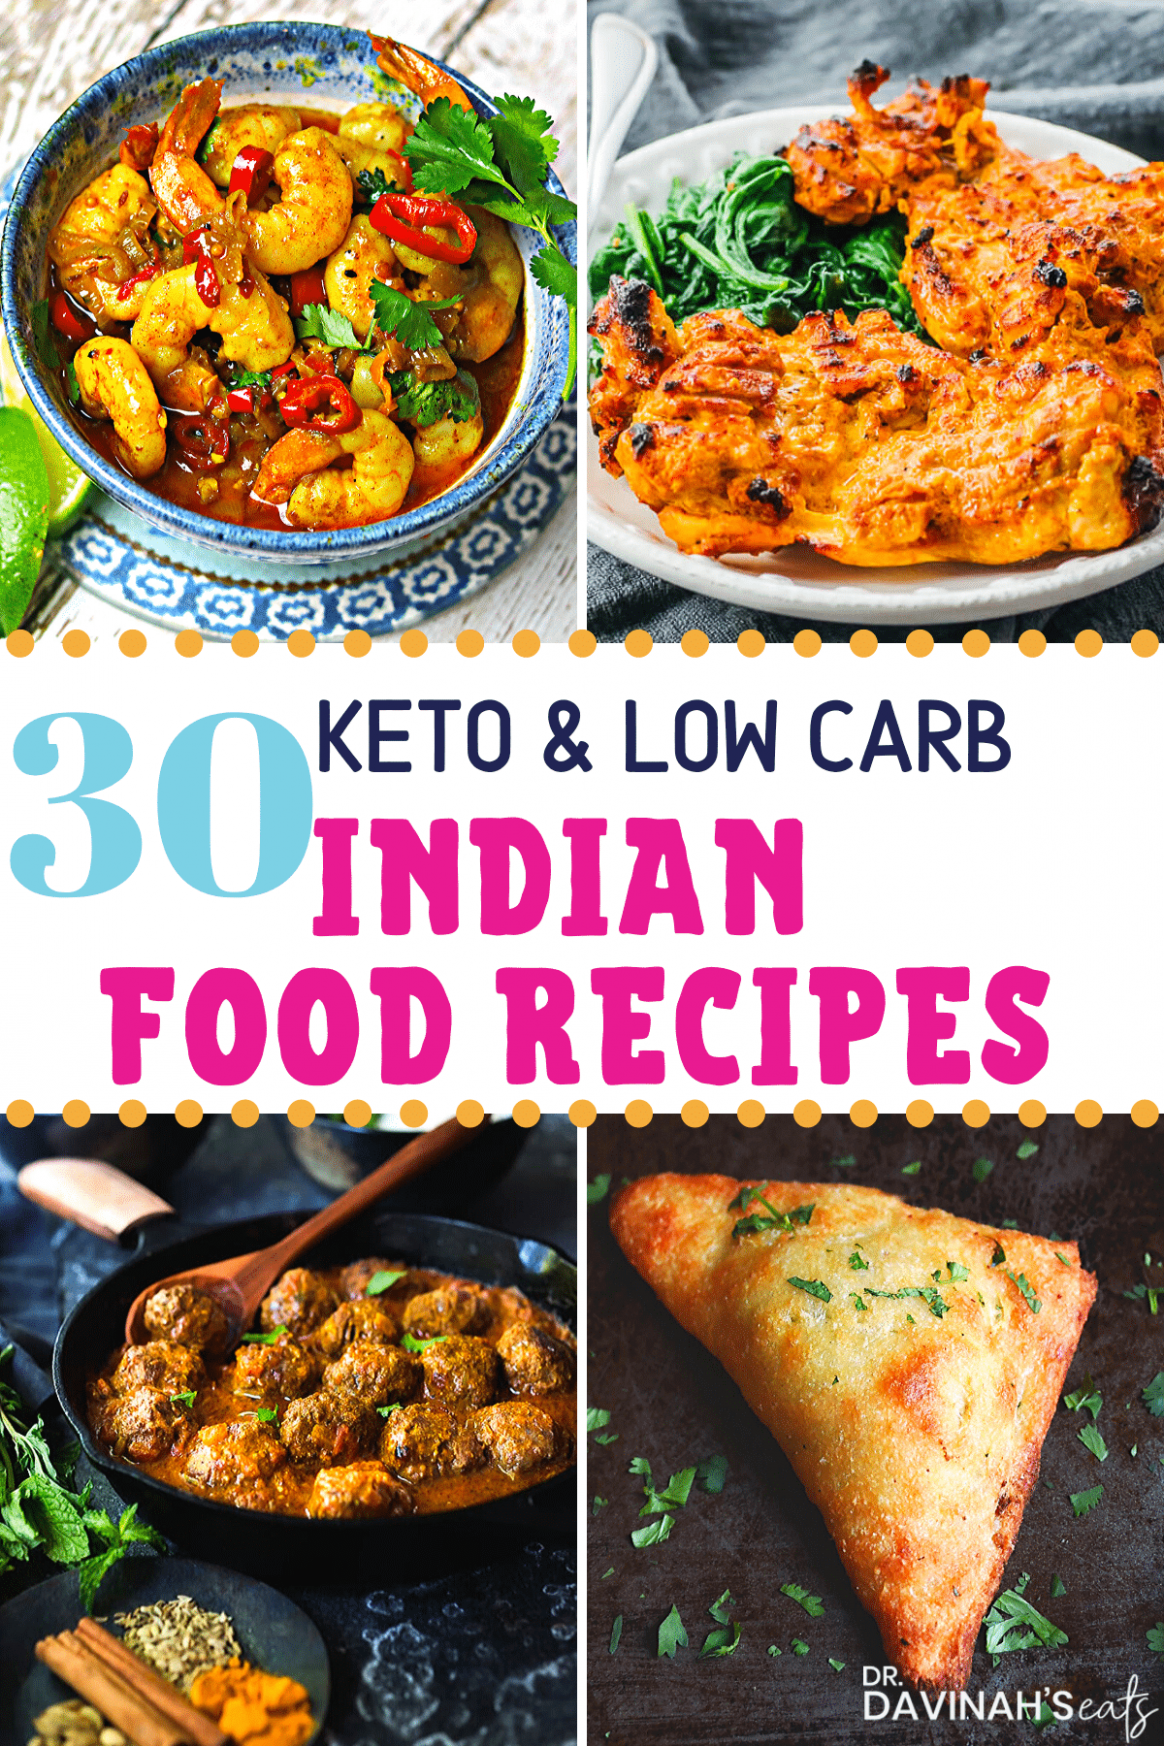 11 Keto Indian Food Recipes Including Samosas! | Dr